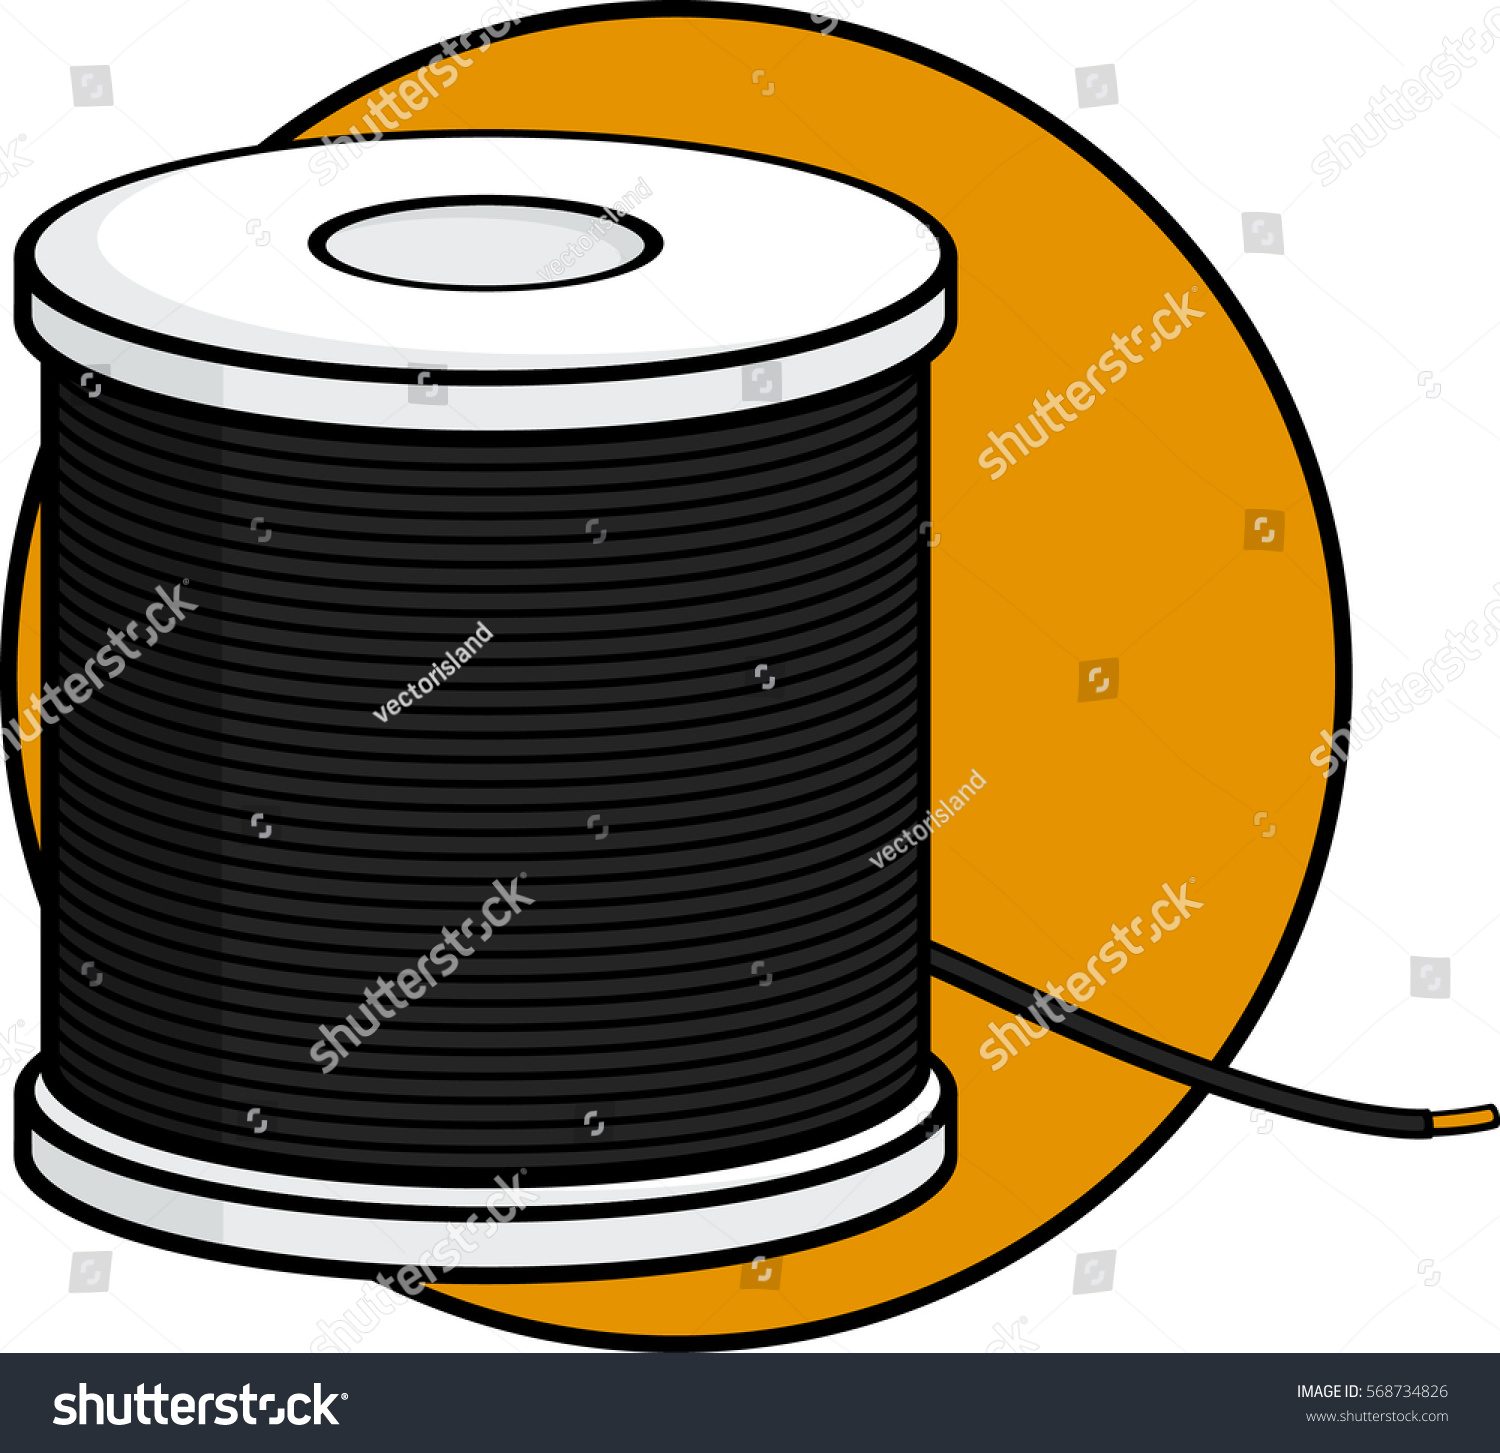 Insulated Wire Spool Stock Vector (Royalty Free) 568734826 ...